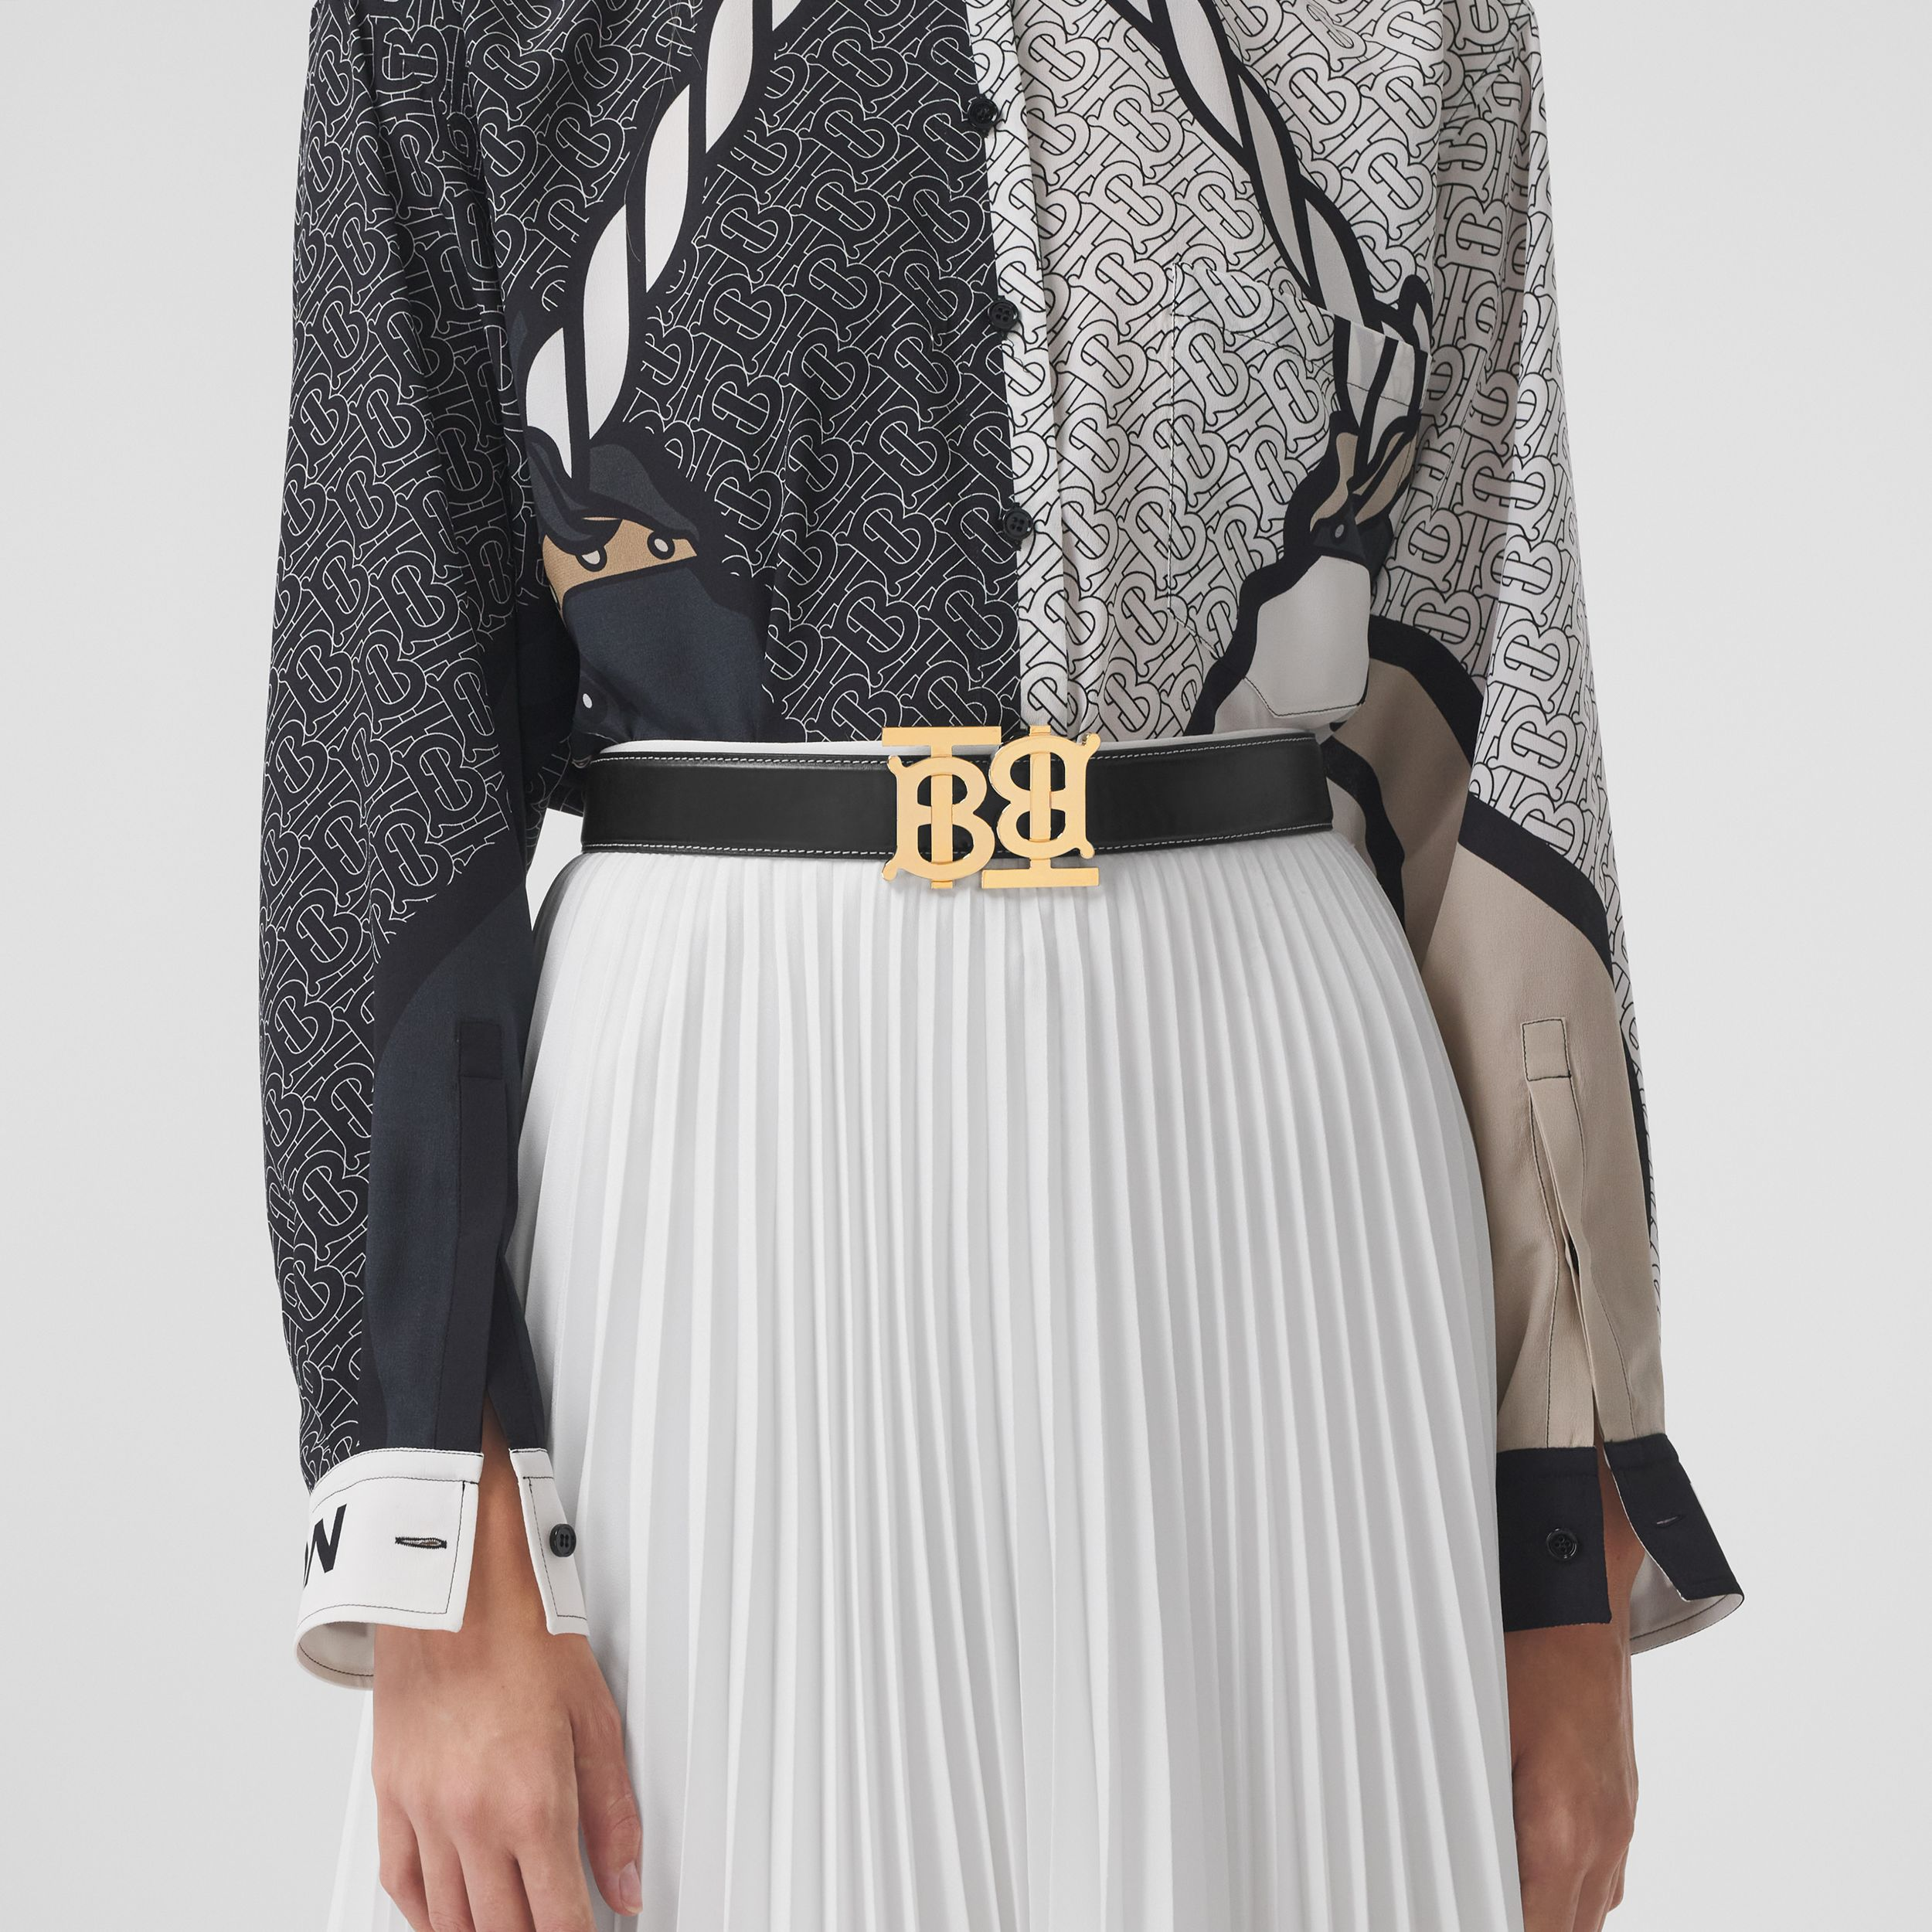 Double Monogram Motif Leather Belt in Black - Women | Burberry Australia - 3